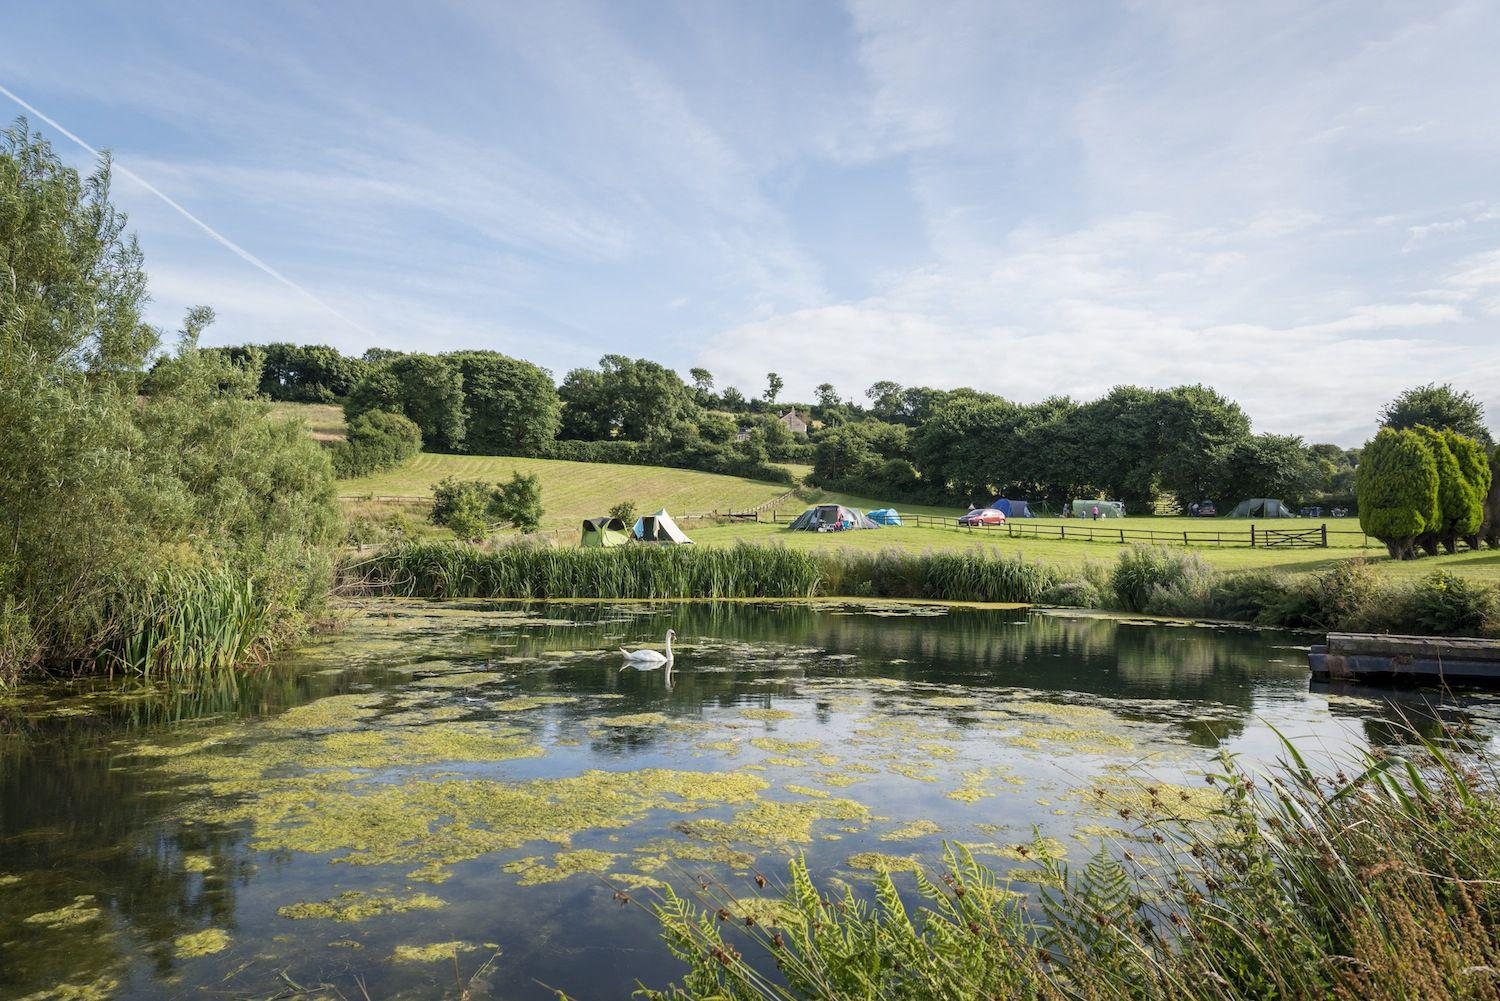 Campsites in South Devon – Camping on the South Devon Coast